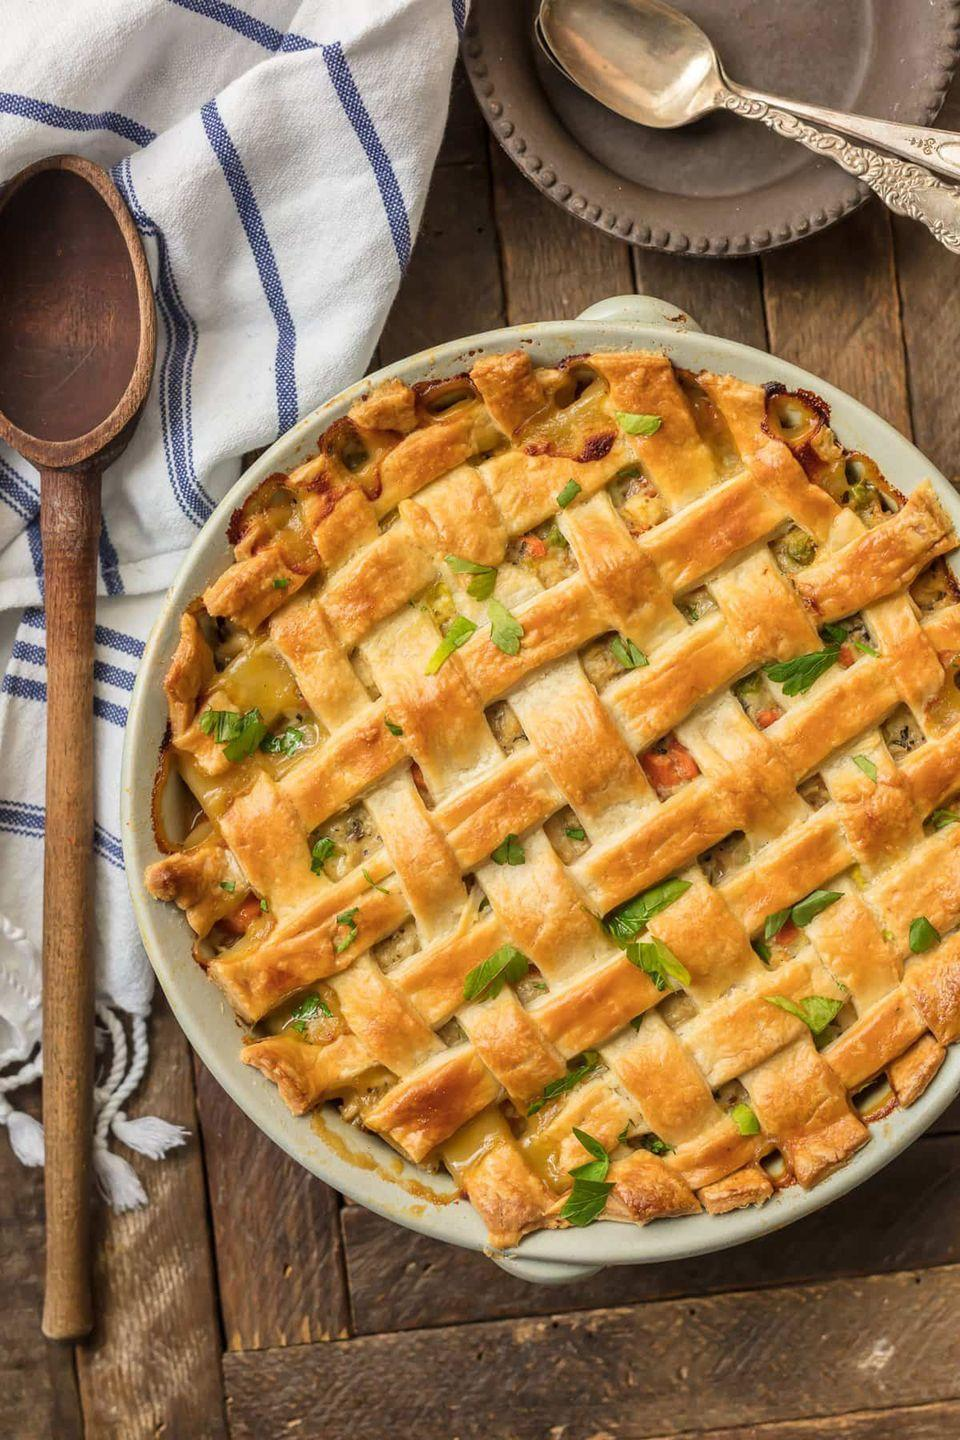 """<p>This creamy comfort food takes all the hassle out of the usual pie-making procedure: Simply fill a <a href=""""https://www.amazon.com/Rachael-Ray-Stoneware-13-Inch-Rectangular/dp/B00MQMEX1W?tag=syn-yahoo-20&ascsubtag=%5Bartid%7C10050.g.3726%5Bsrc%7Cyahoo-us"""" rel=""""nofollow noopener"""" target=""""_blank"""" data-ylk=""""slk:casserole dish"""" class=""""link rapid-noclick-resp"""">casserole dish</a> with all the ingredients, top with a store bought crust, and bake. </p><p><strong>Get the recipe at <a href=""""https://www.thecookierookie.com/chicken-pot-pie-casserole/"""" rel=""""nofollow noopener"""" target=""""_blank"""" data-ylk=""""slk:The Cookie Rookie"""" class=""""link rapid-noclick-resp"""">The Cookie Rookie</a>.</strong></p>"""